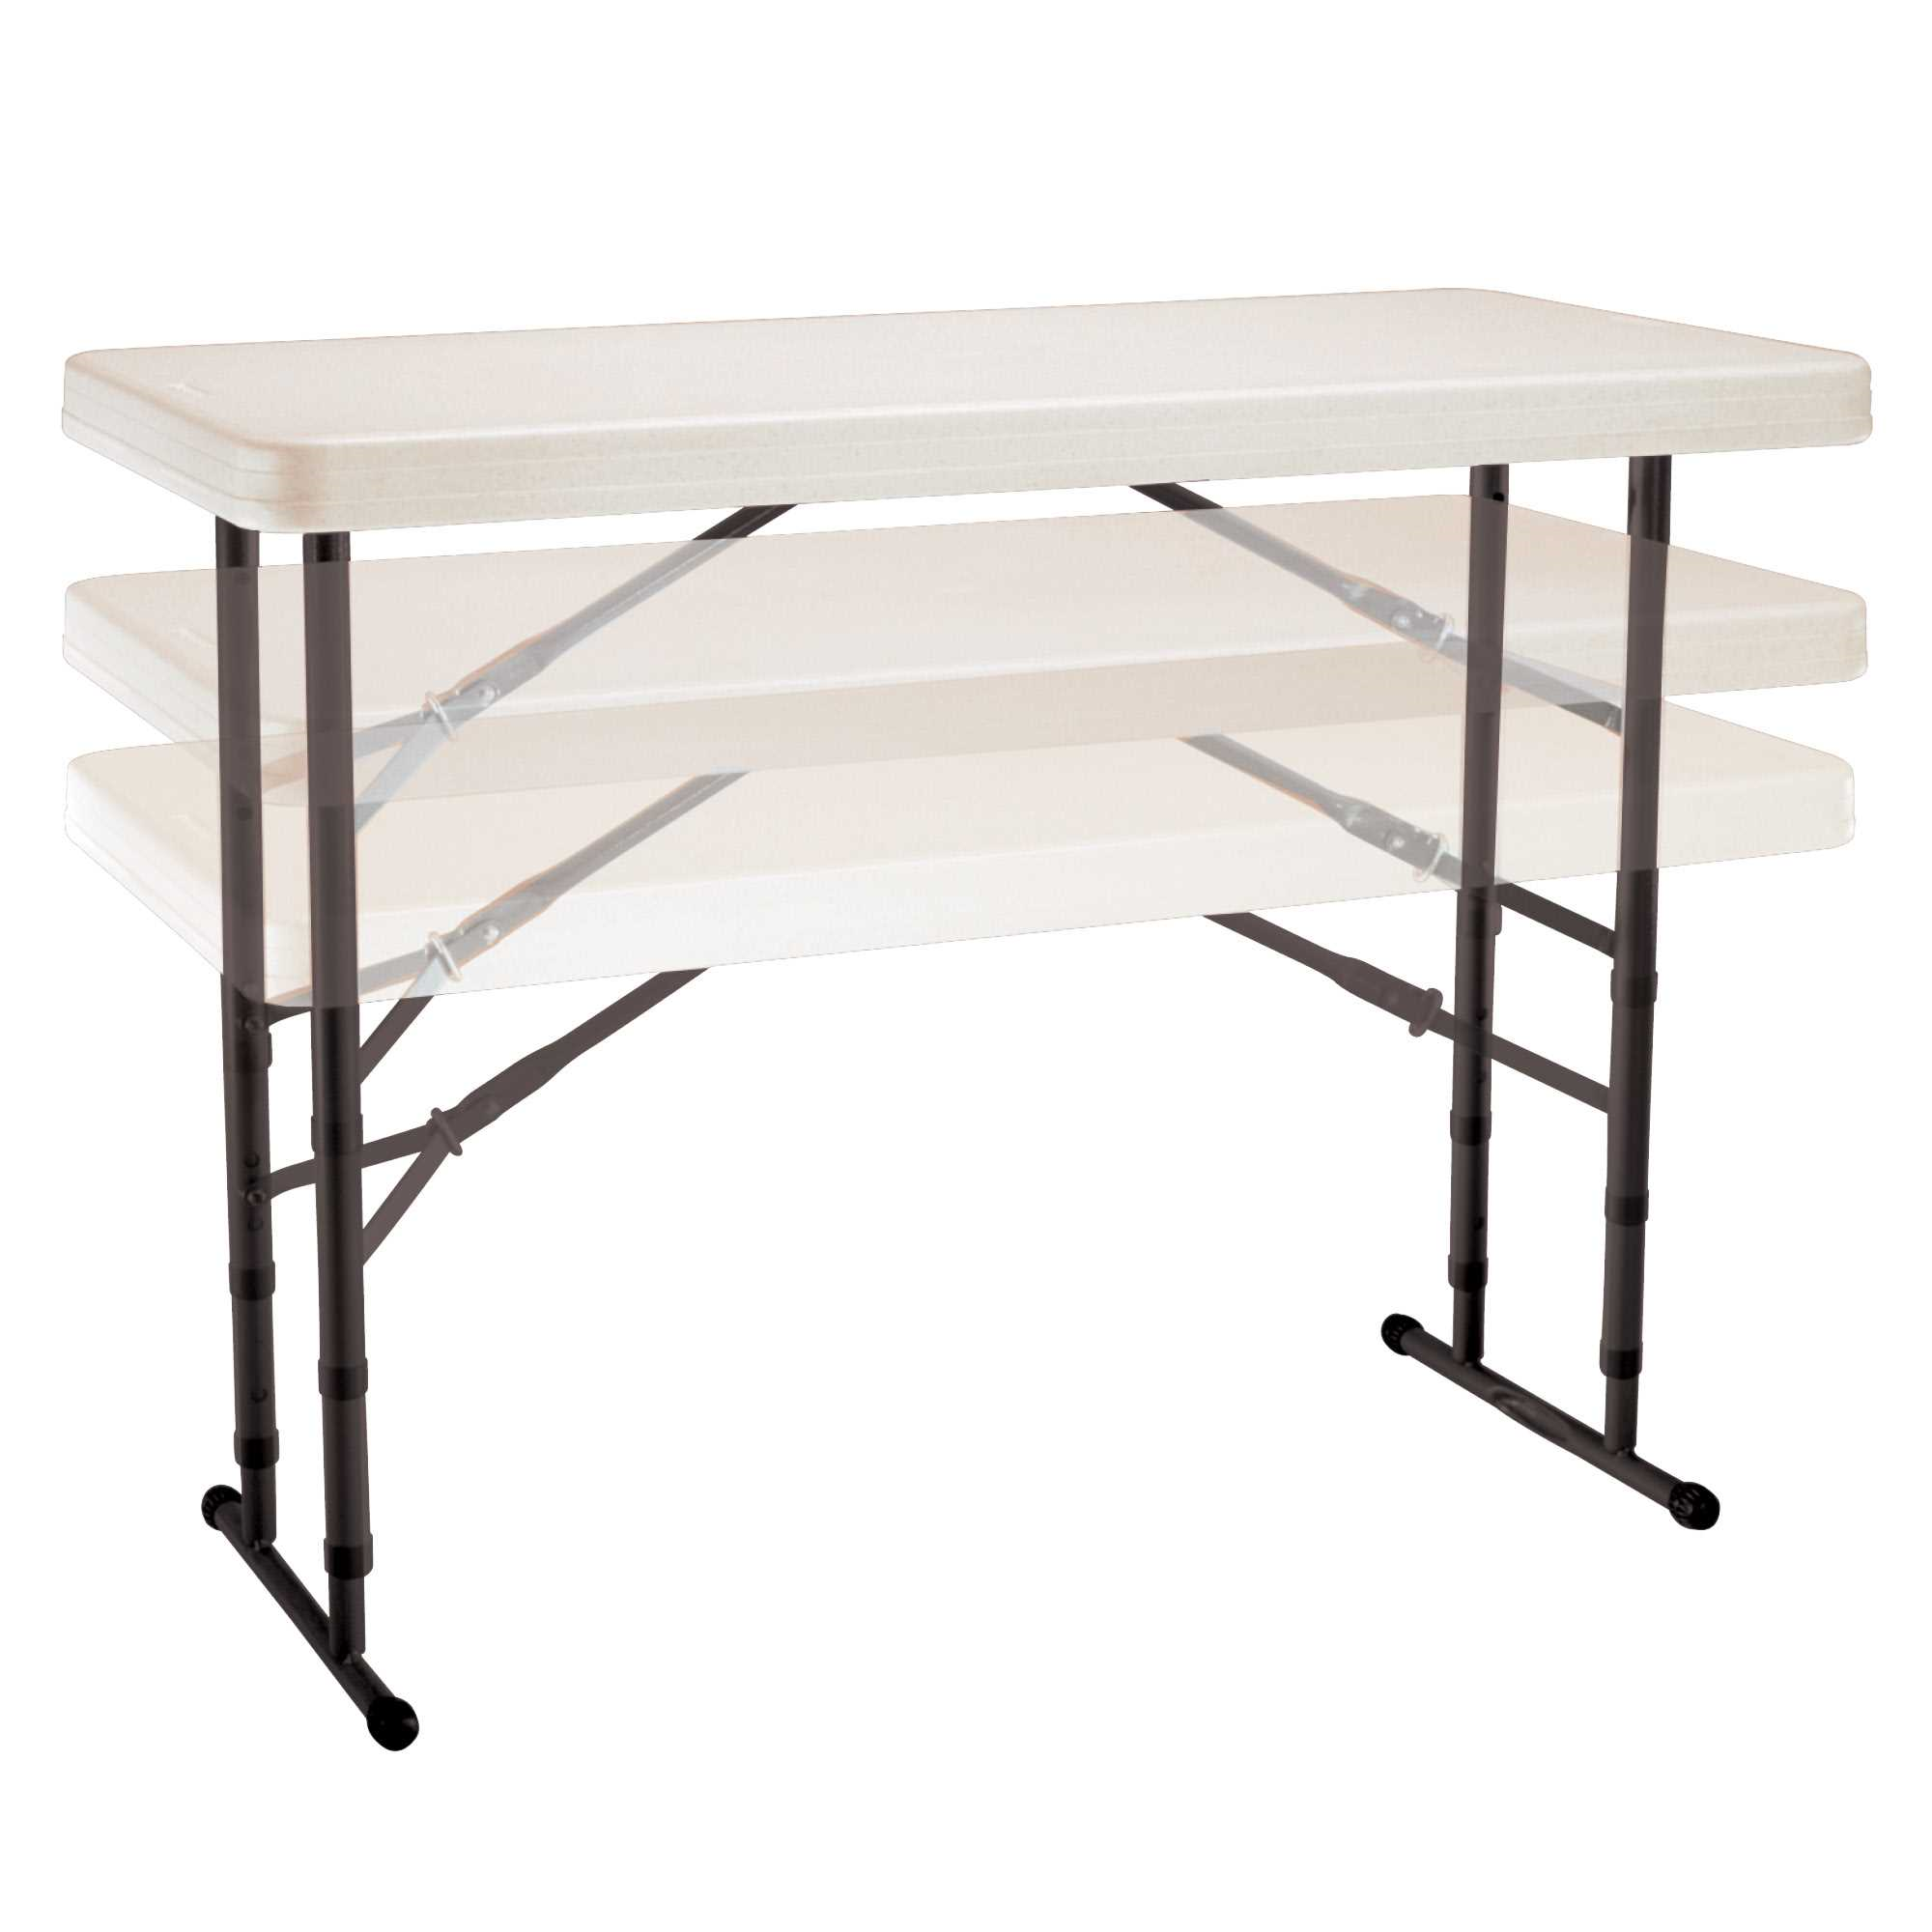 Lifetime 4-Foot Adjustable Height Table (Commercial)